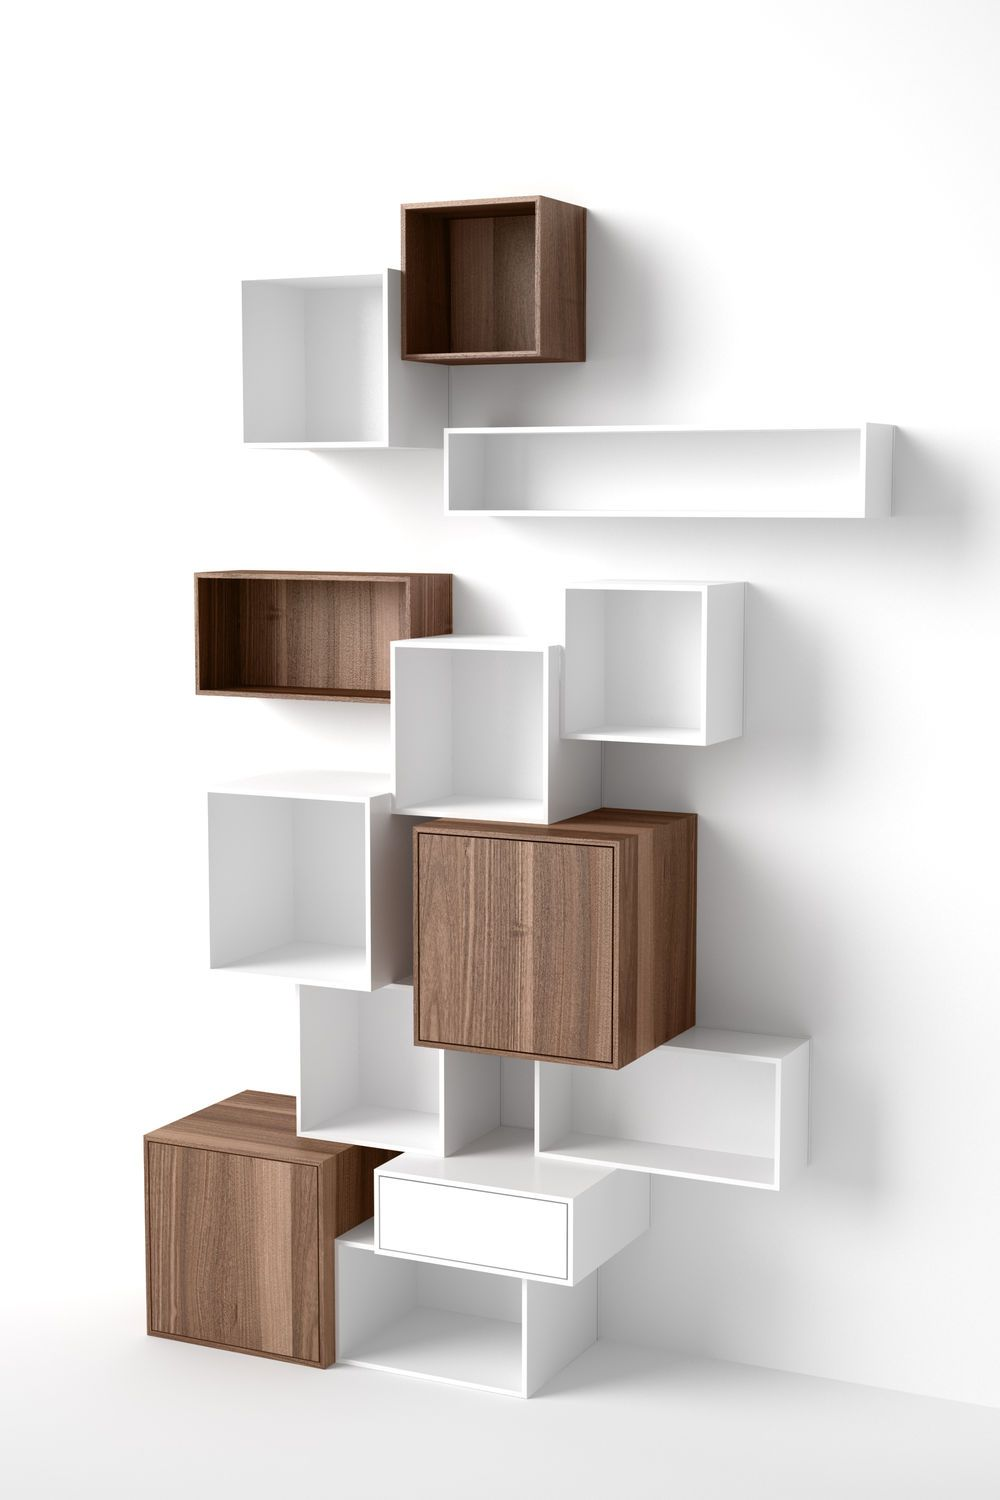 High low modular shelving systems buscar con google for Moderne wandregale wohnzimmer